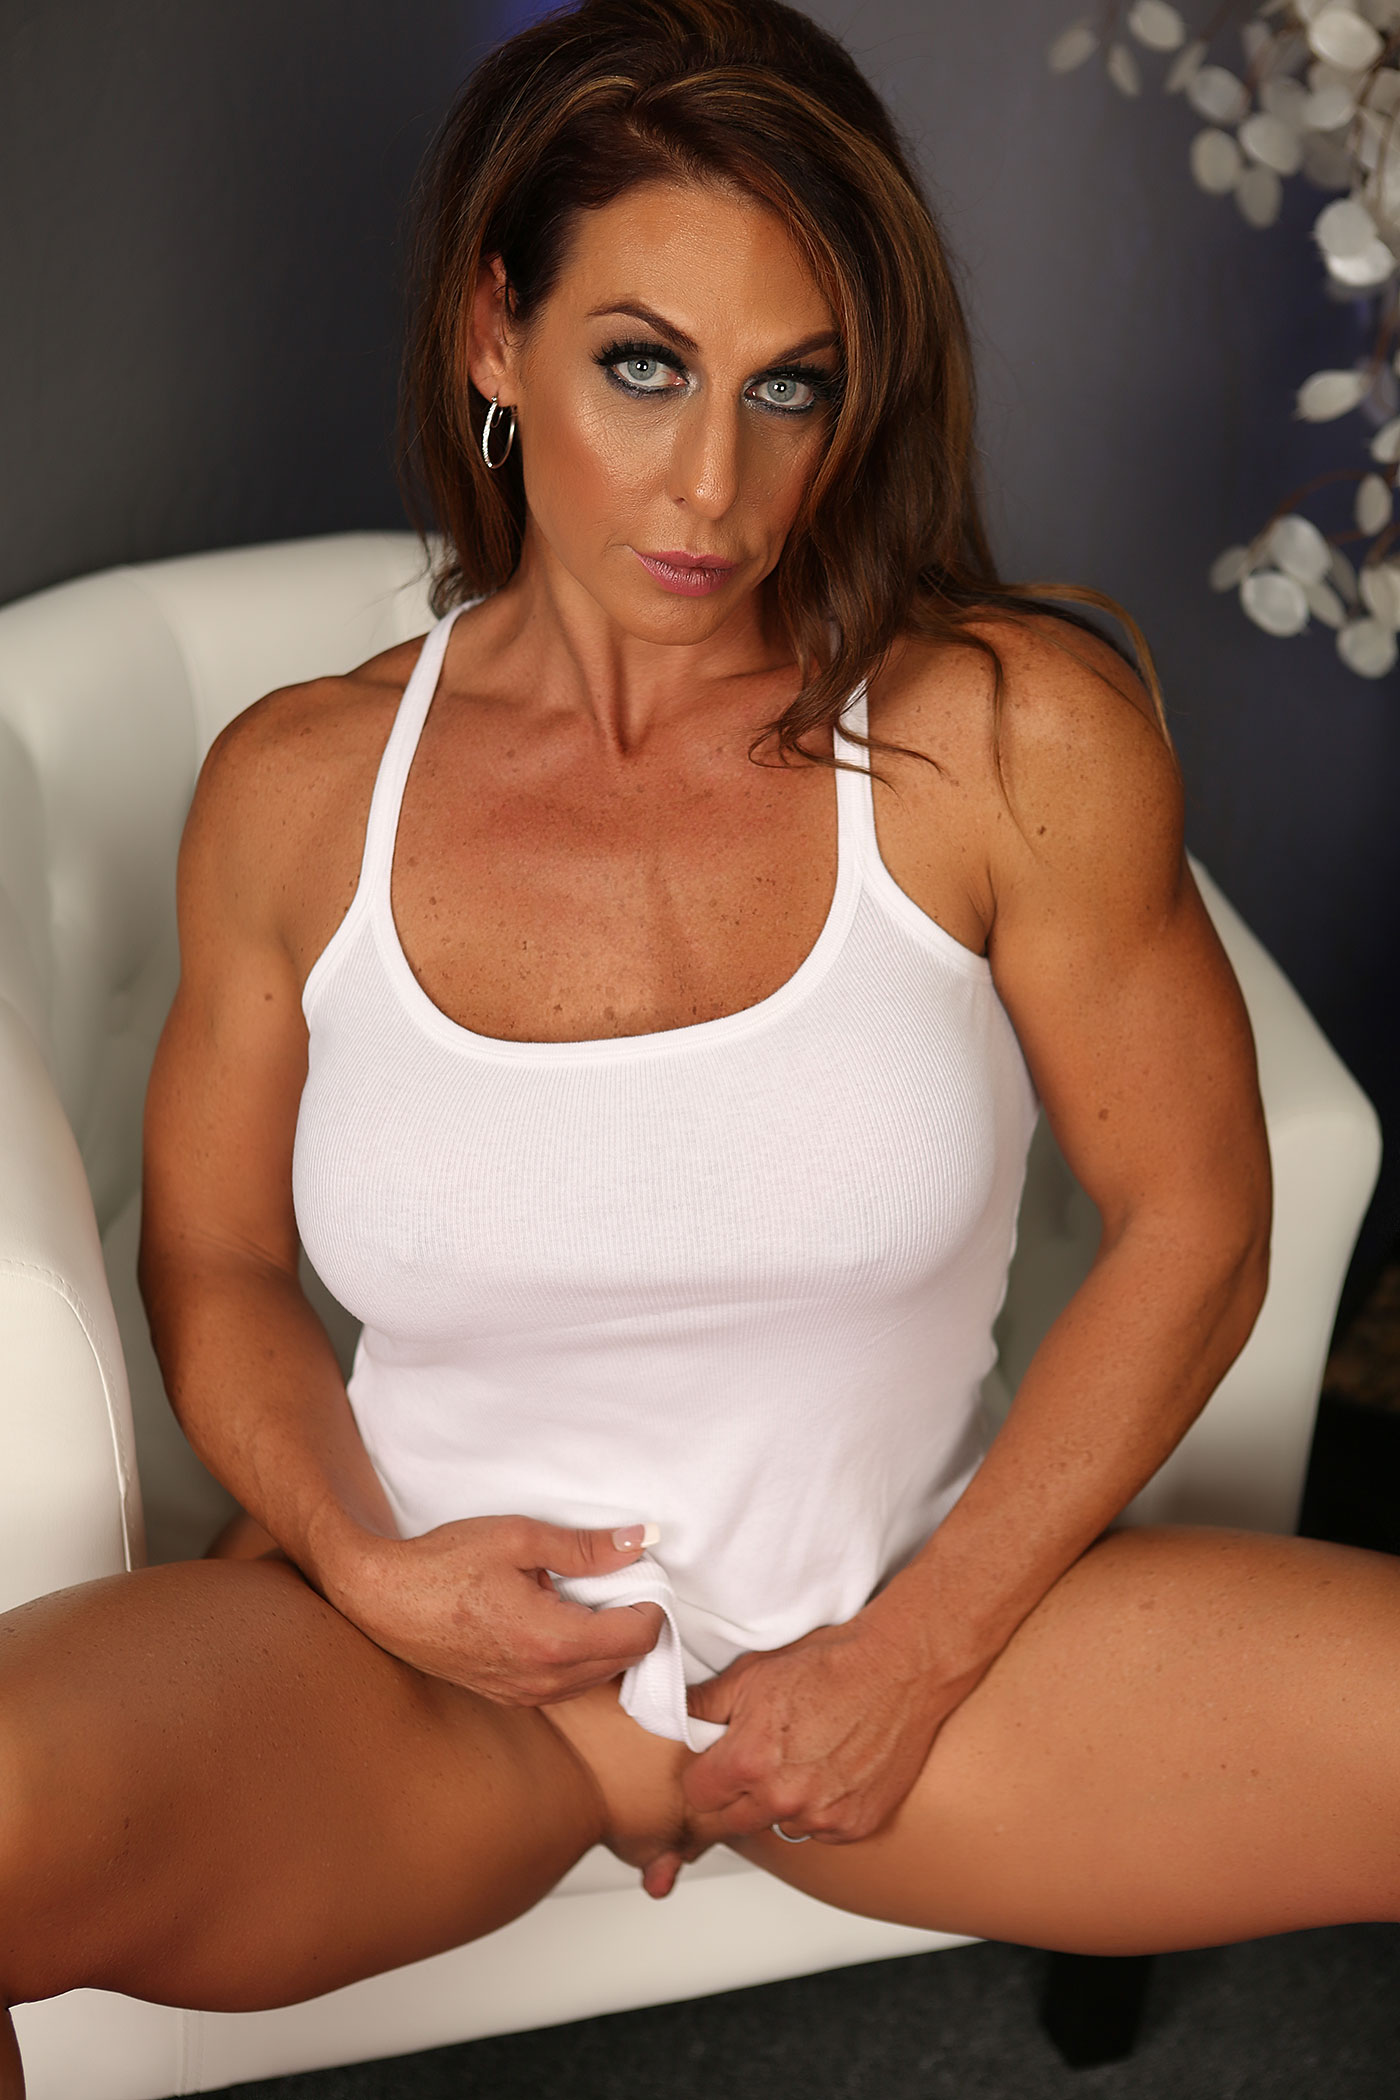 Ass female bodybuilder clit love the way